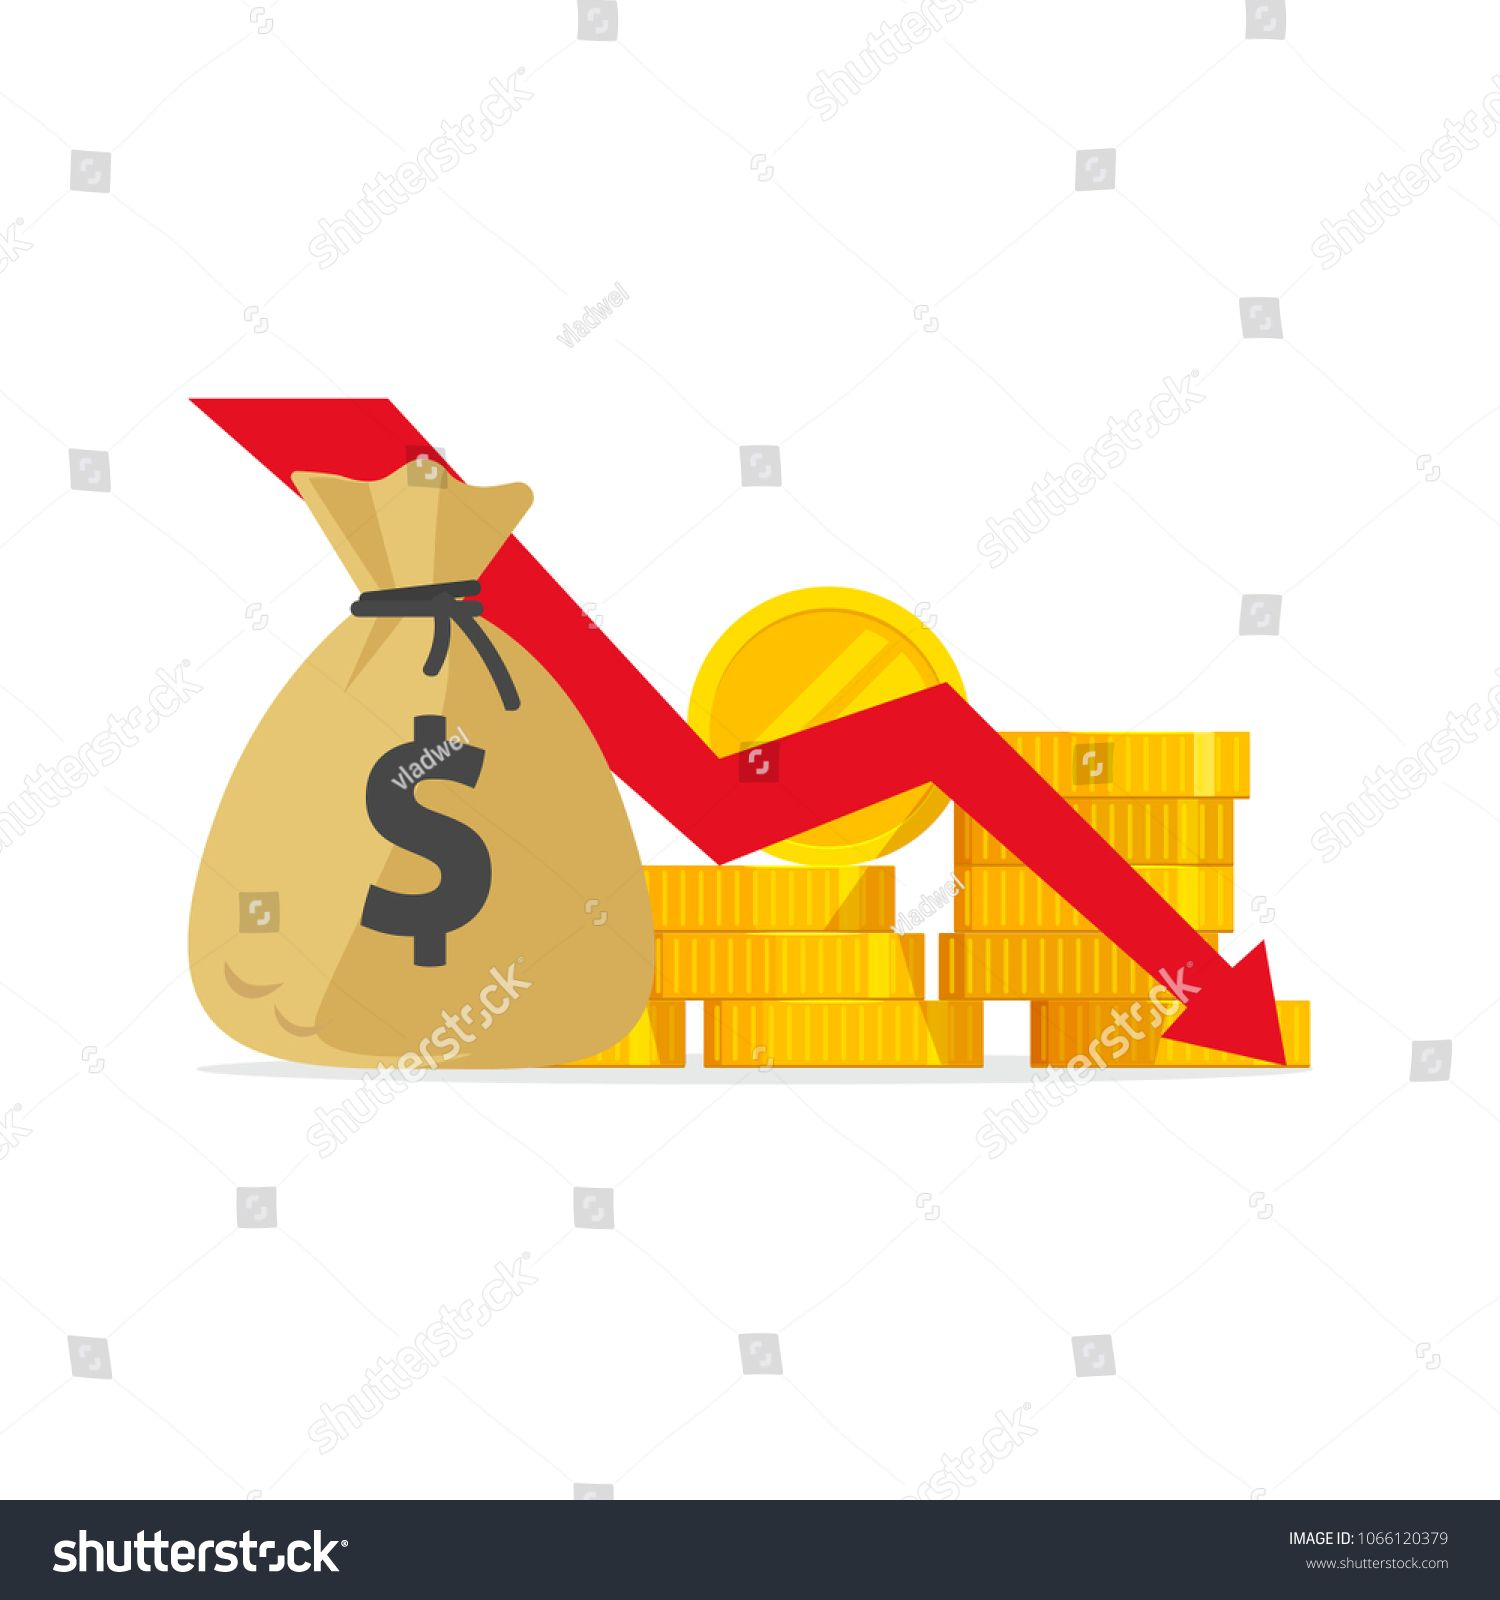 Money Loss Vector Illustration Flat Cartoon Cash With Down Arrow Stocks Graph Concept Of Financial Crisis Mark Vector Illustration Stock Graphs Illustration